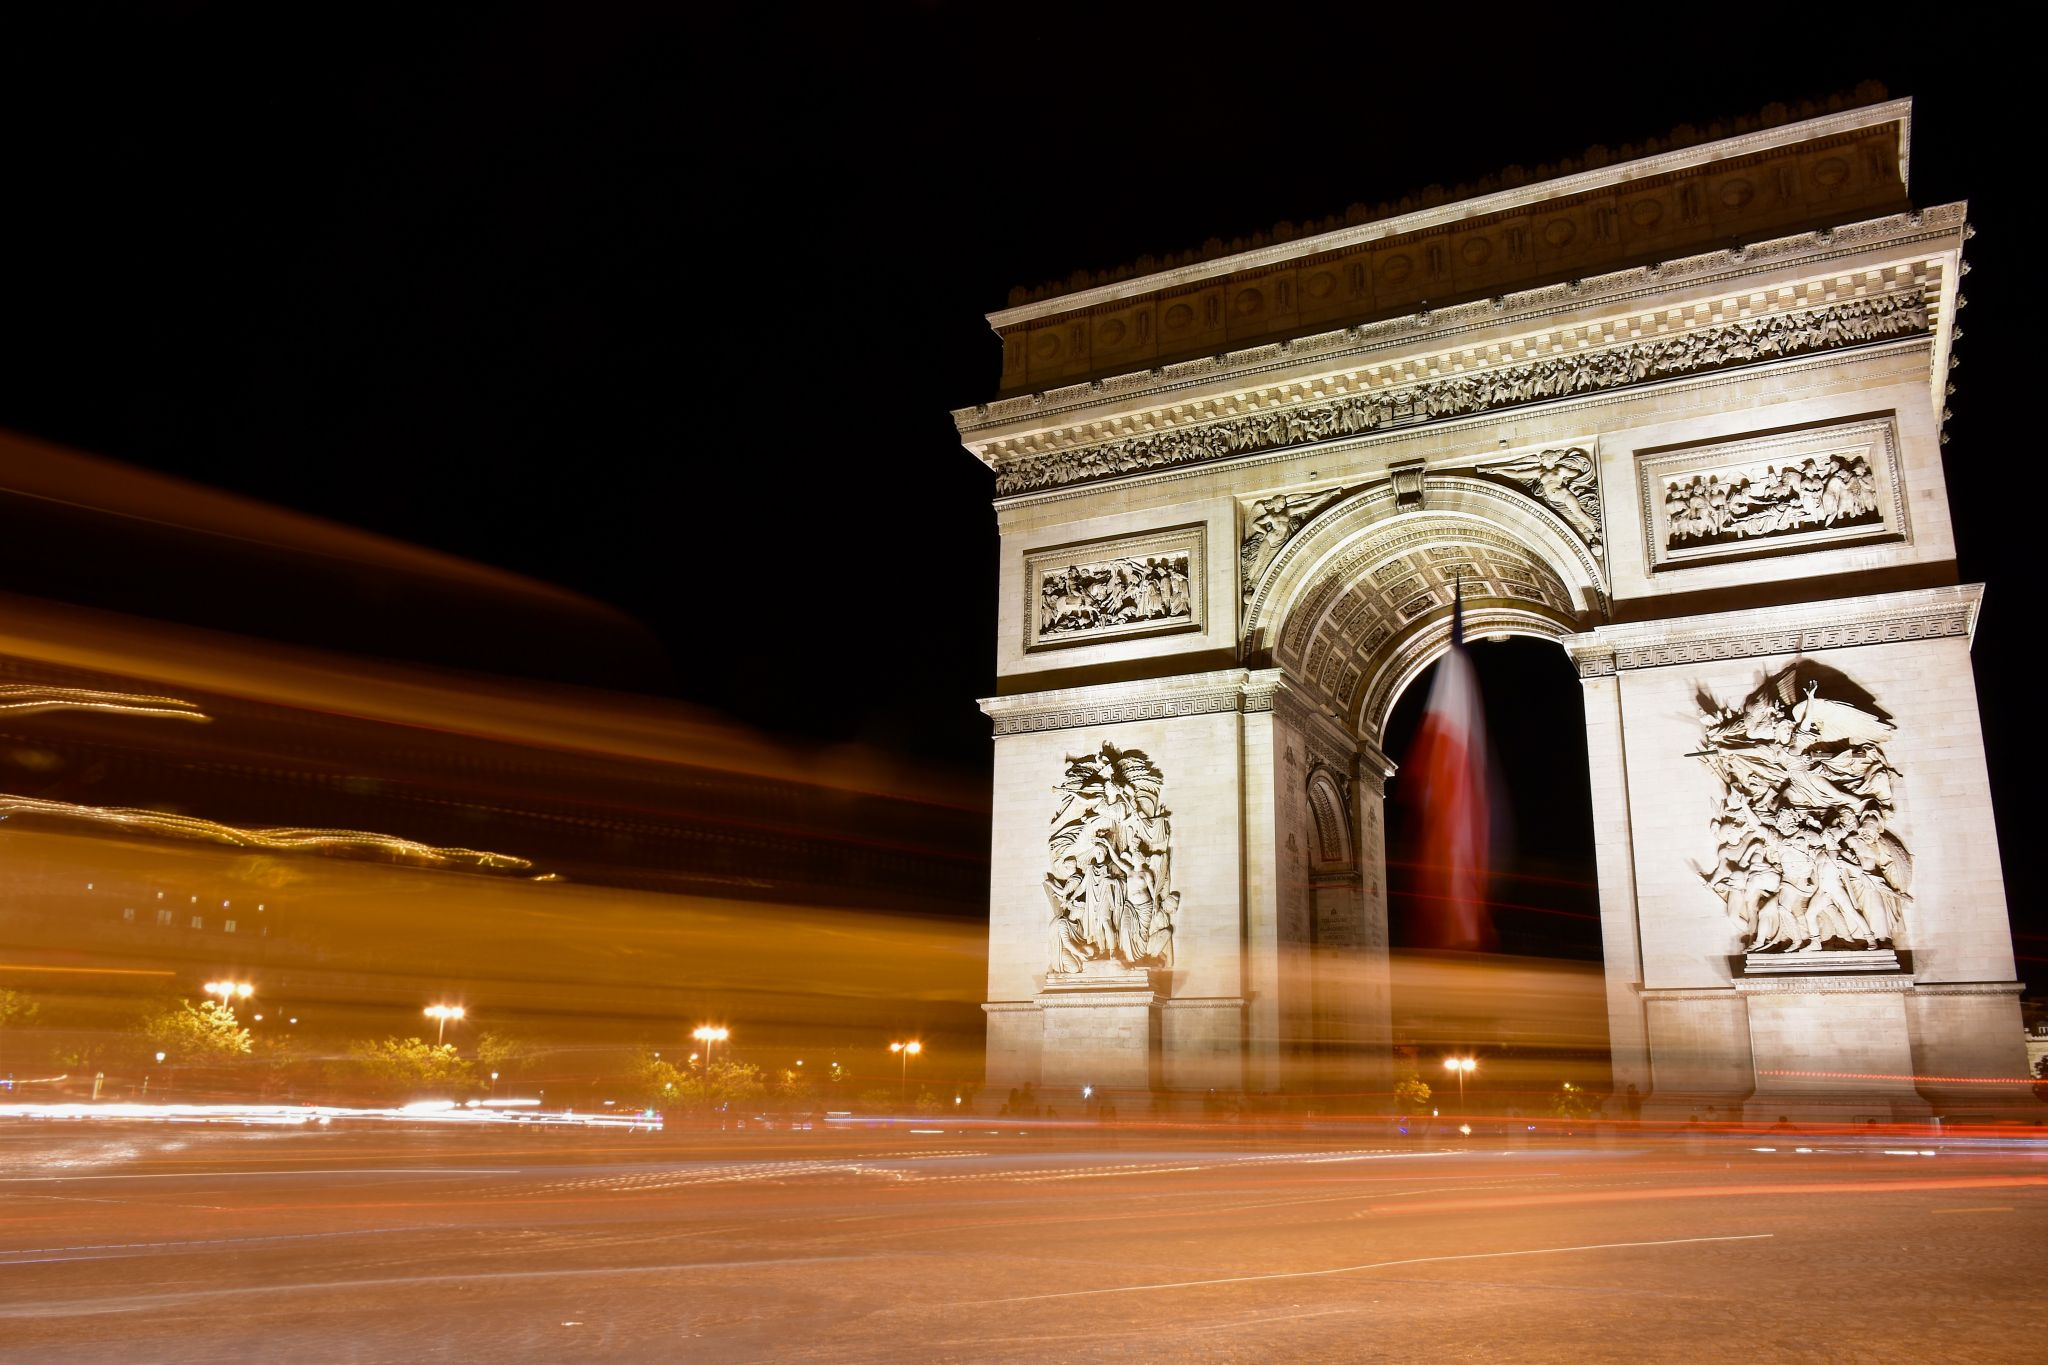 Arc de Triumph at night, France